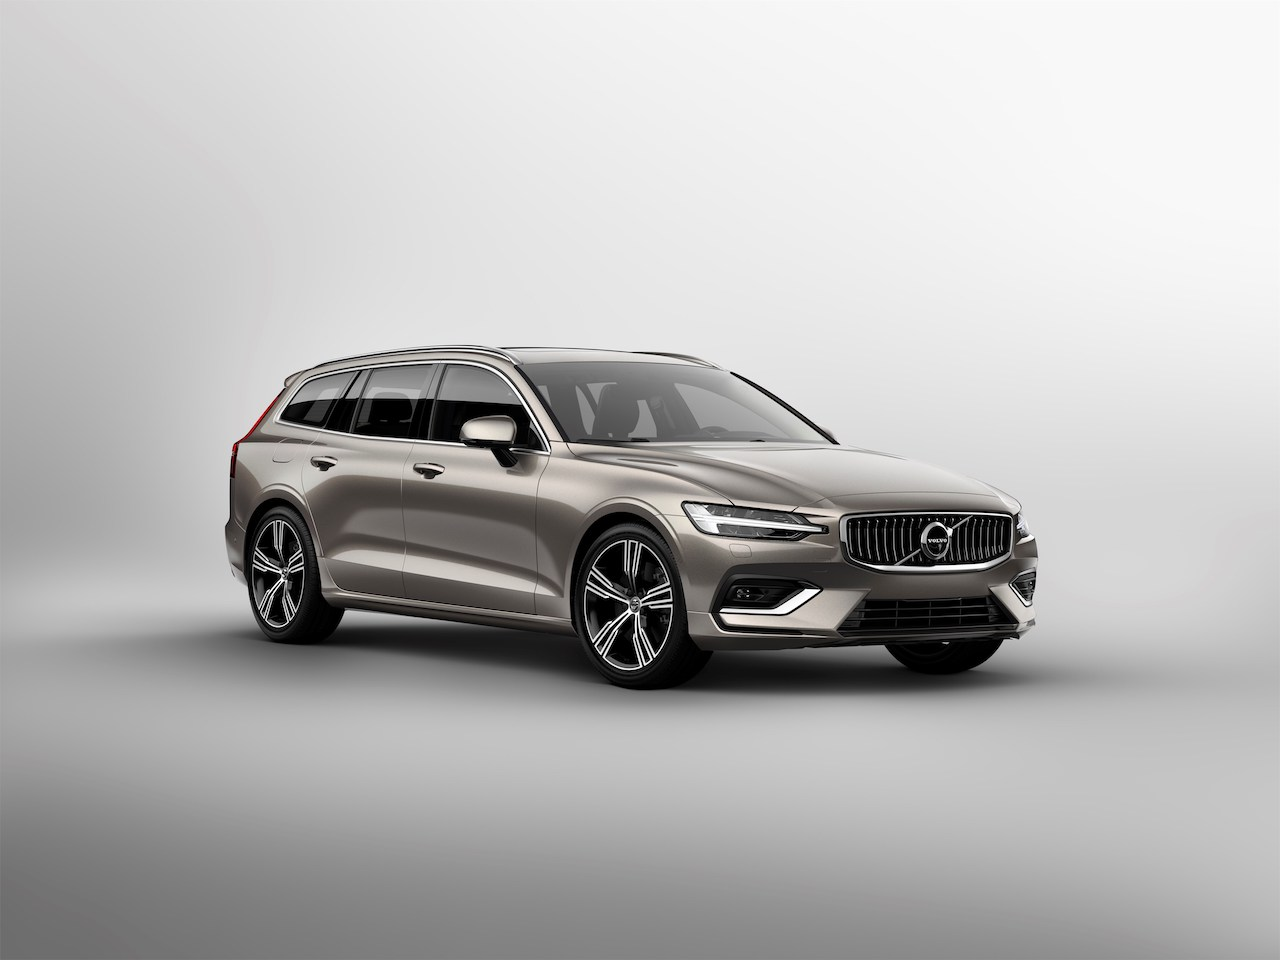 2018 Volvo V60 front three quarters